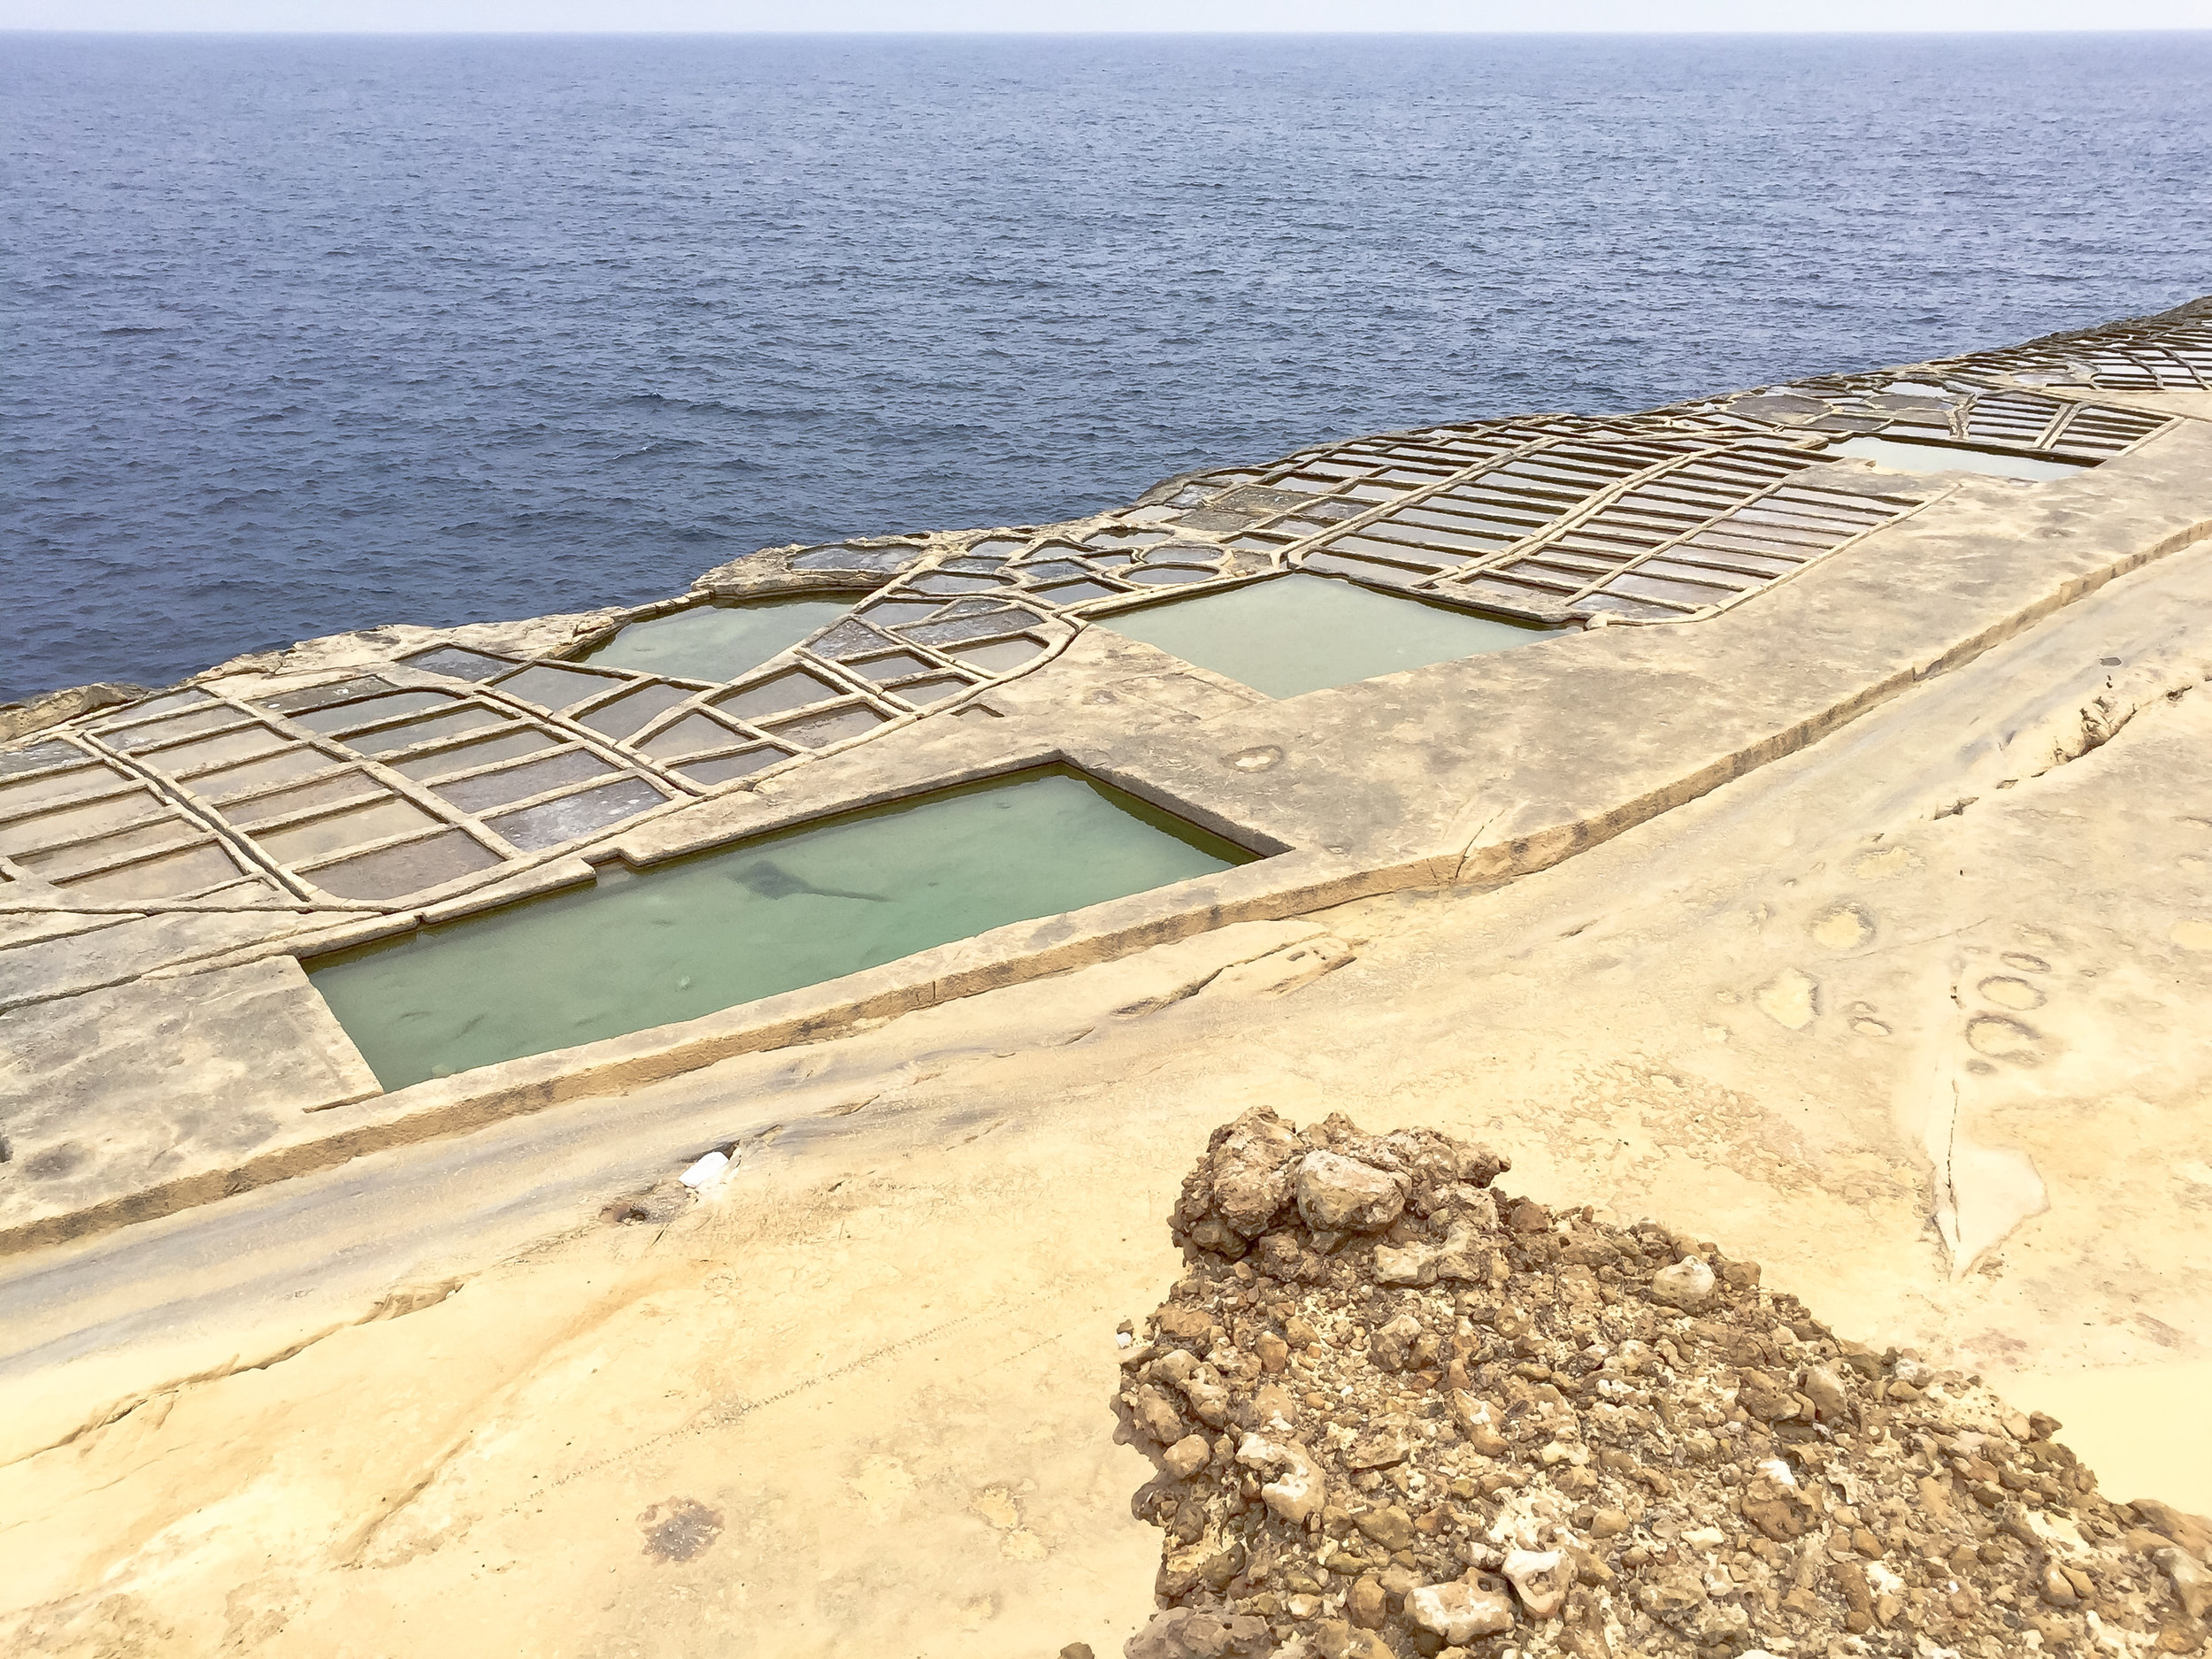 350-Year Old Salt Pans | Gozitan Traditional SEa-Salt Production | Mediterranean Coast | Nature | LAndscape - Thinking About Appreciation For Quality In Malta | Gozo, Malta, Europe | DoLessGetMoreDone.com | - iPhone Minimal Travel Documentary Photography - search for Liveability | Sustainability